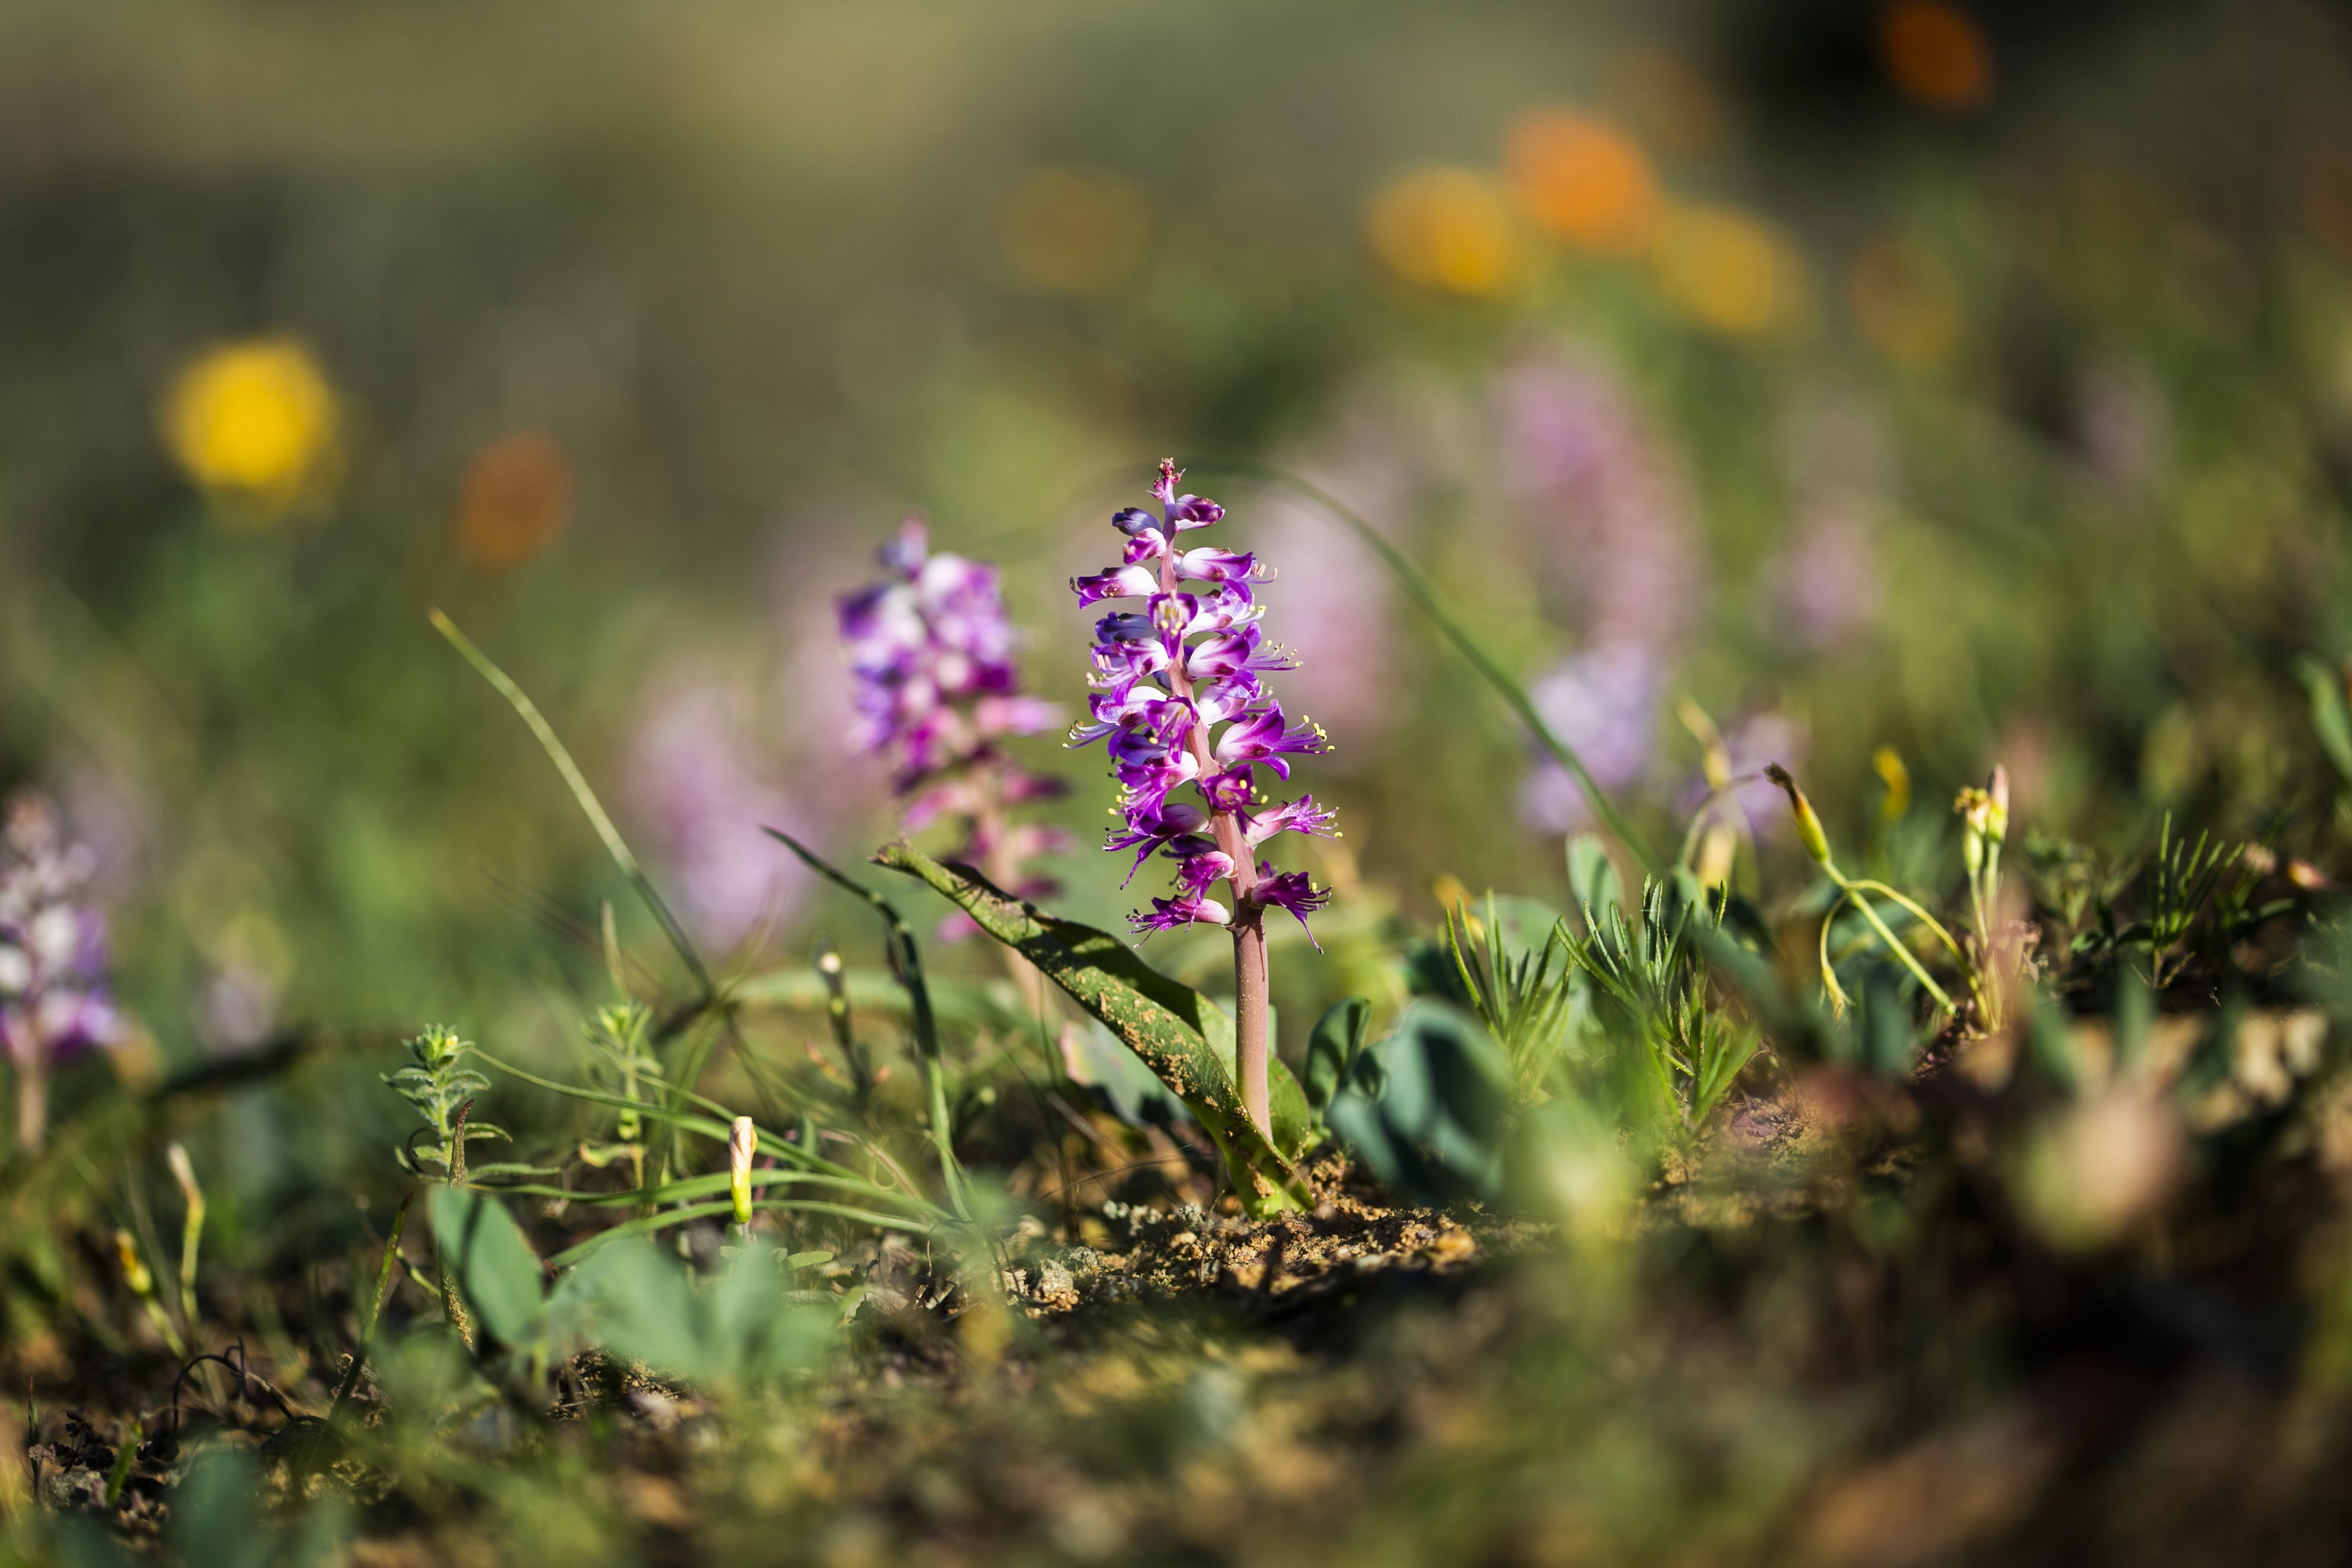 Free stock photo of violet, African violets, field of flowers, violet flowers